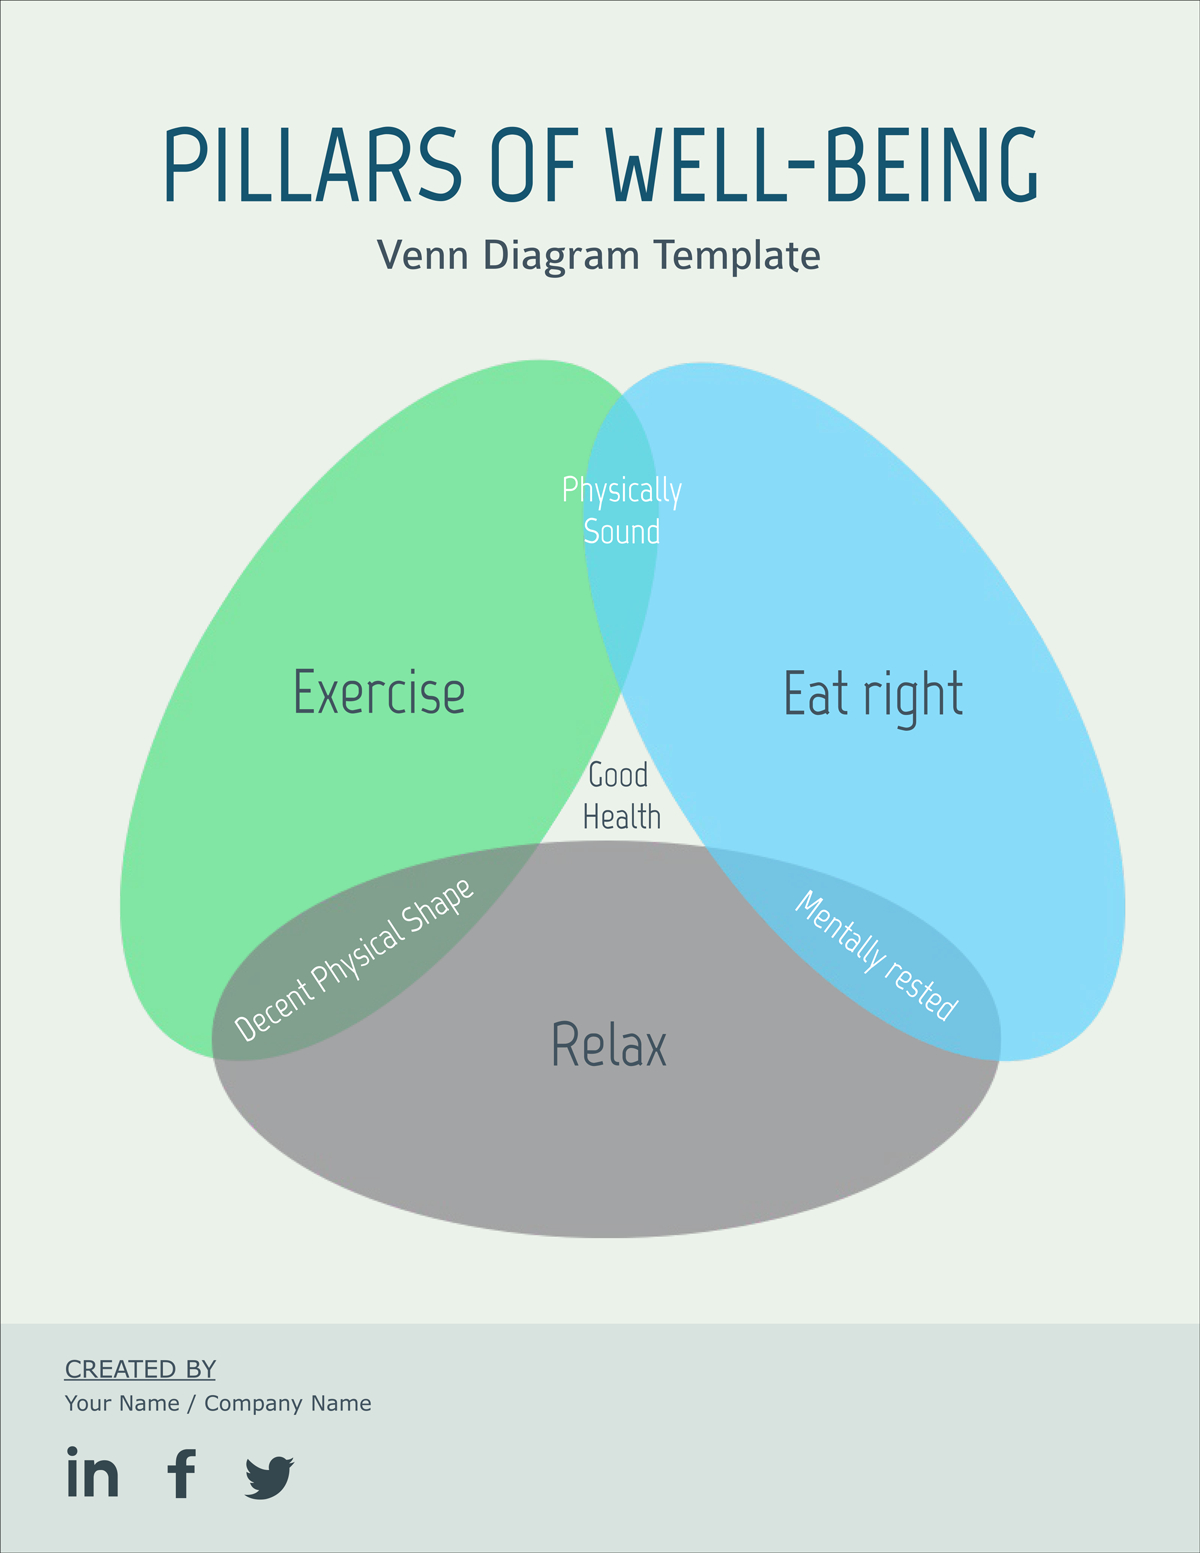 How To Make A Venn Diagram On Word Free Venn Diagram Template Edit Online And Download Visual